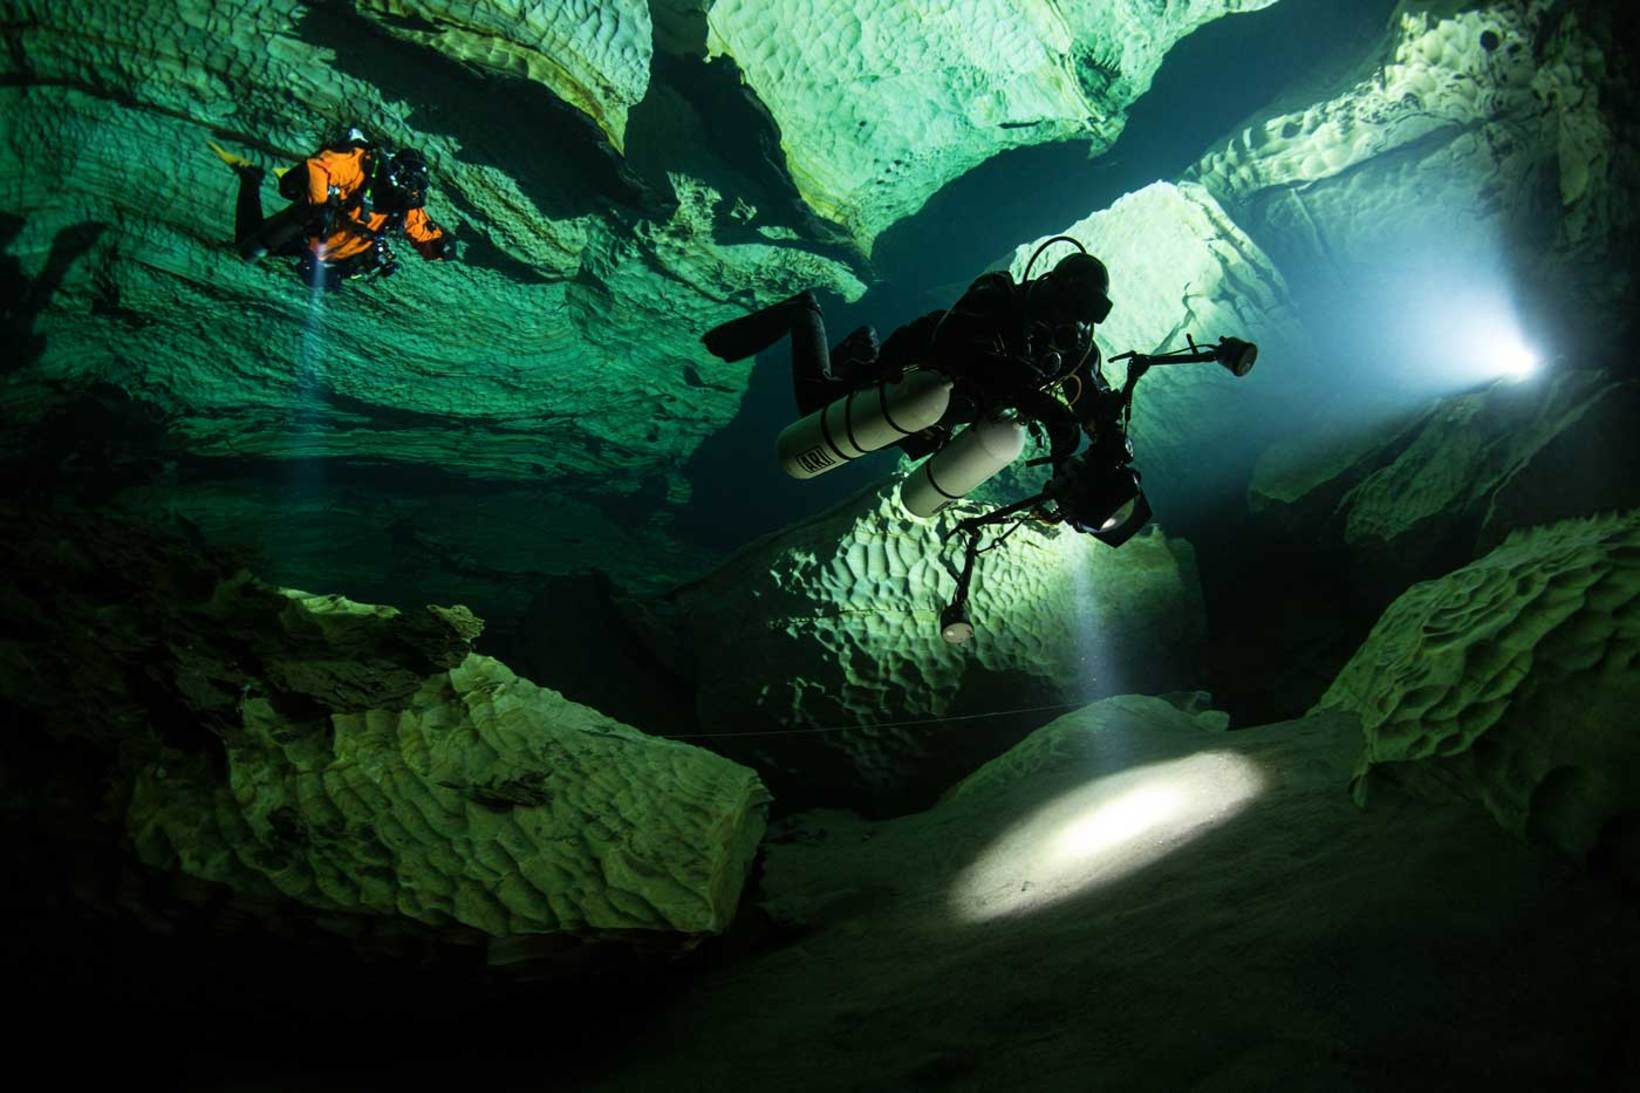 THE HOME OF ARCTIC CAVE DIVING